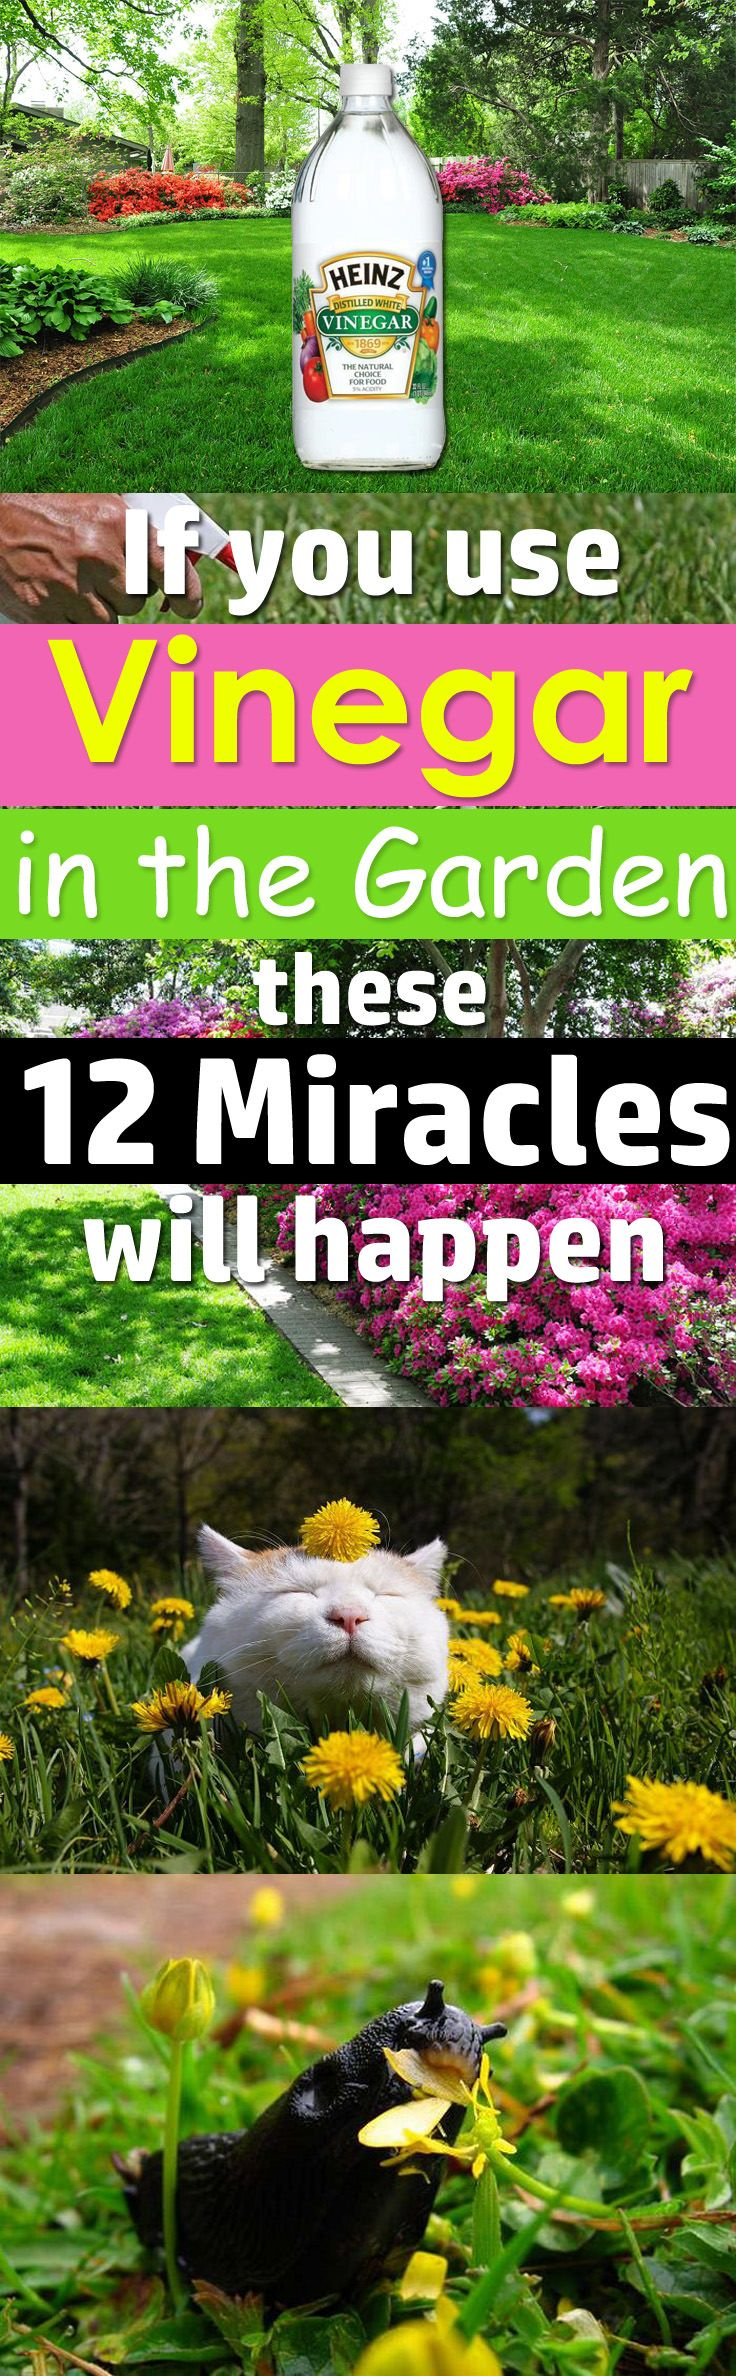 If you use vinegar in the garden these 12 miracles will happen for Vinegar in the garden